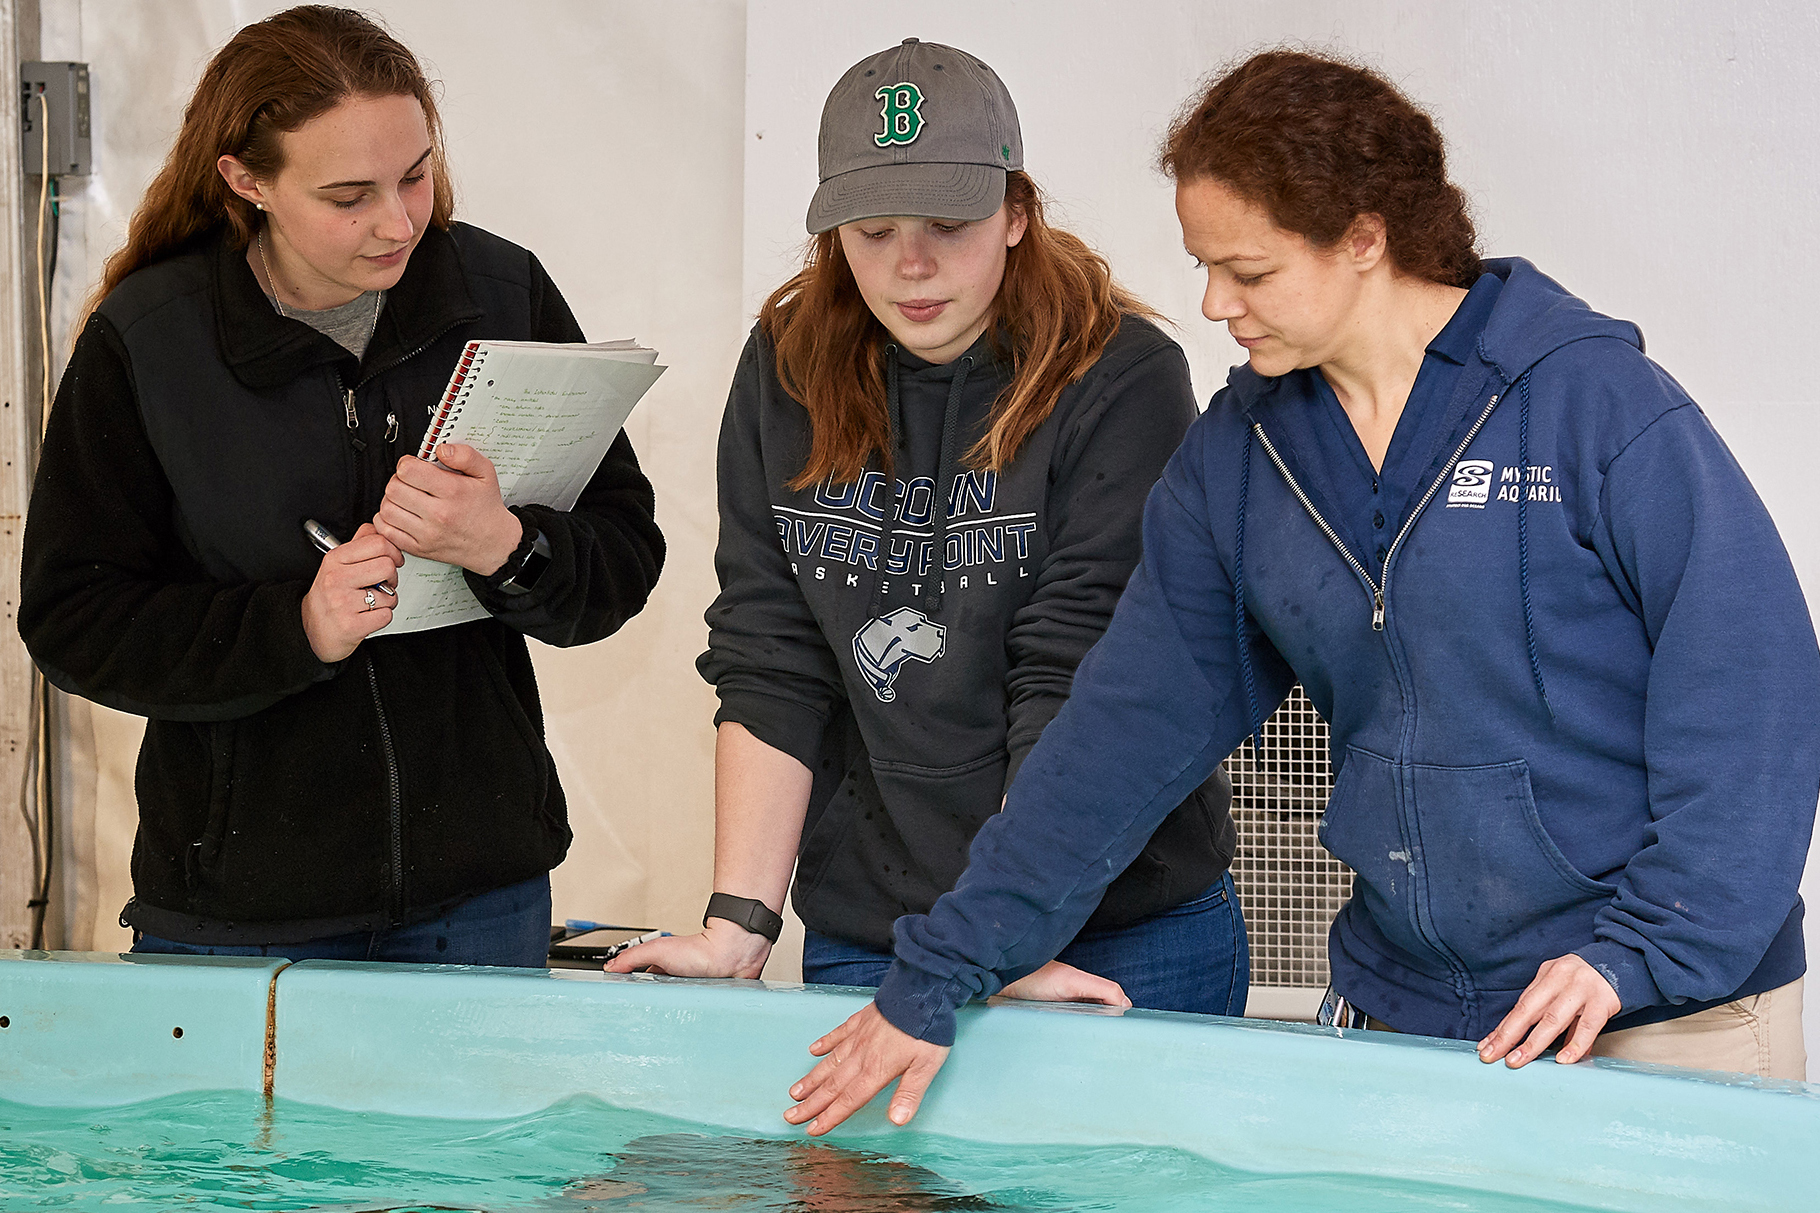 Seniors Jessica Hinckley, left, and Mia Dupuis with instructor Tracy Romano at Mystic Aquarium's ray touch pool, tracking how ray movement differs when guests are not in the exhibit. (Peter Morenus/UConn Photo)